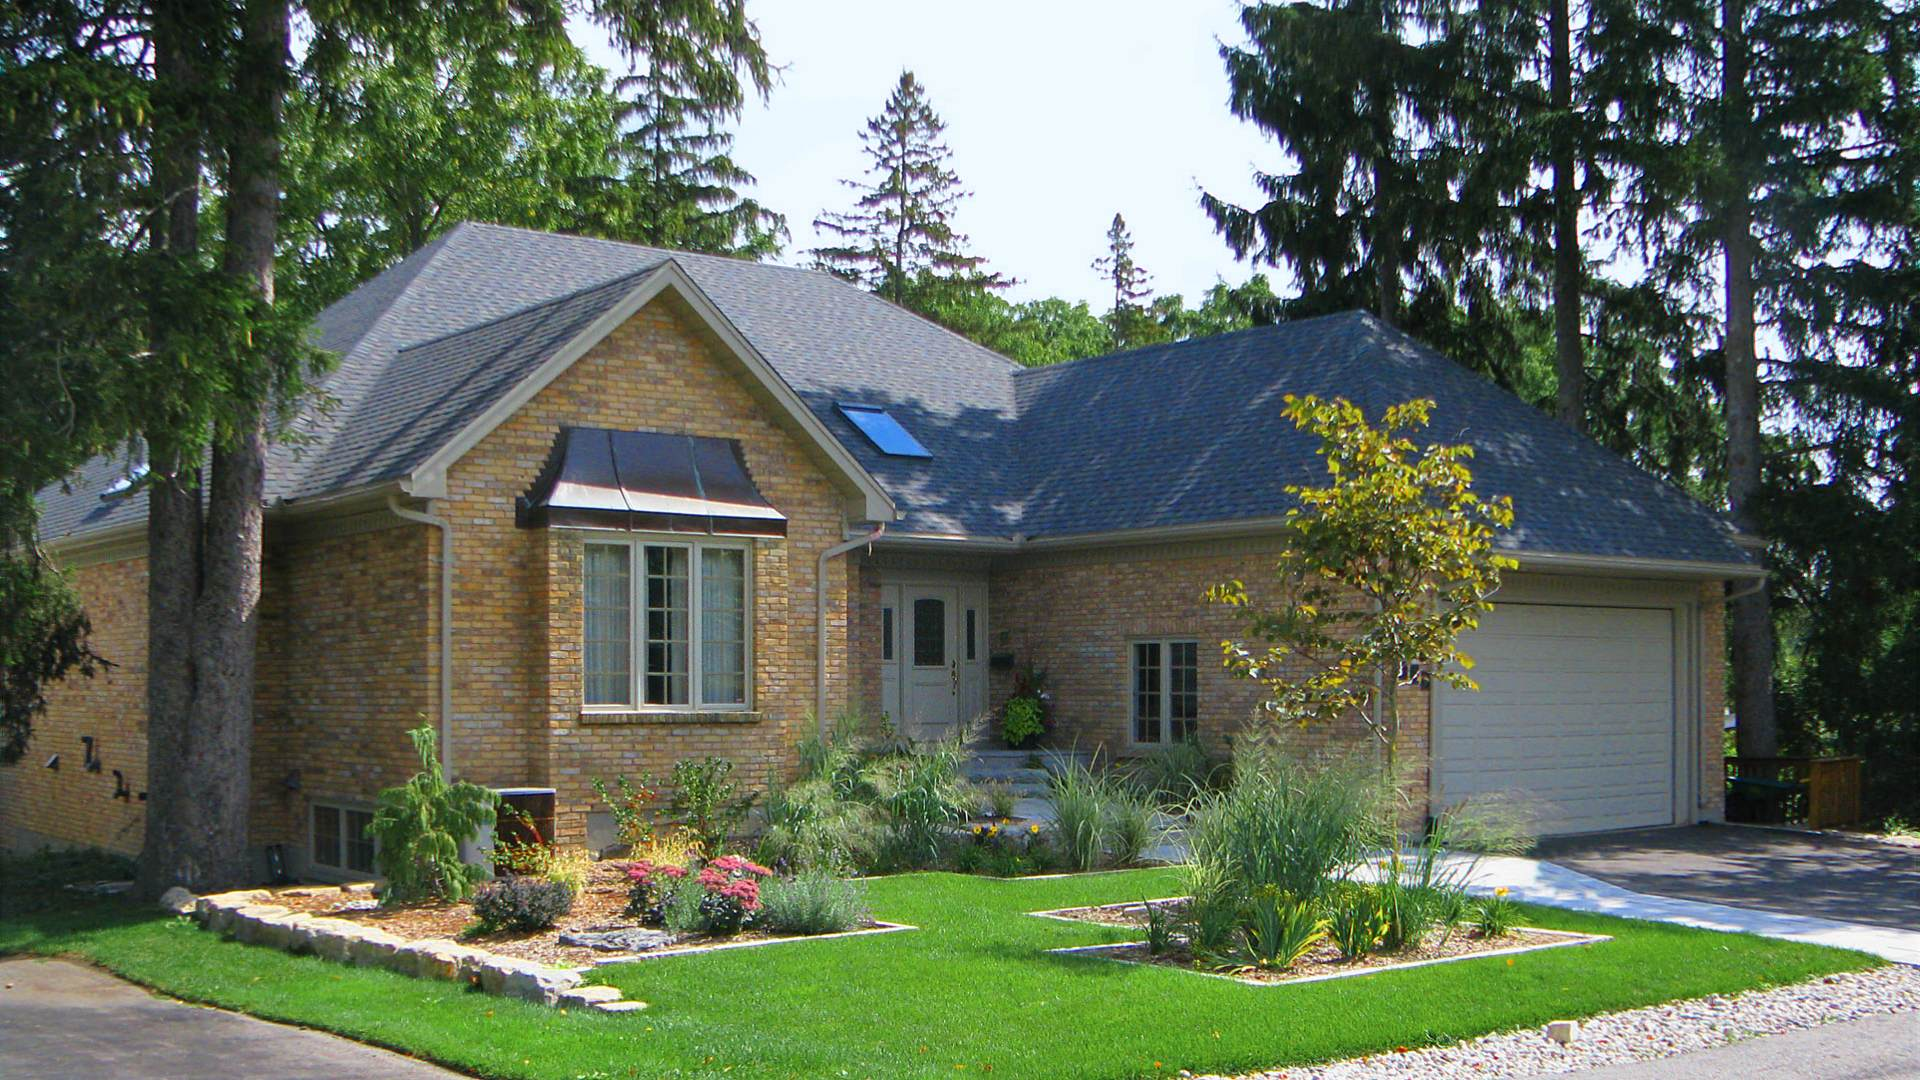 Front lawn landscaping and landscape redesign project in London Ontario.